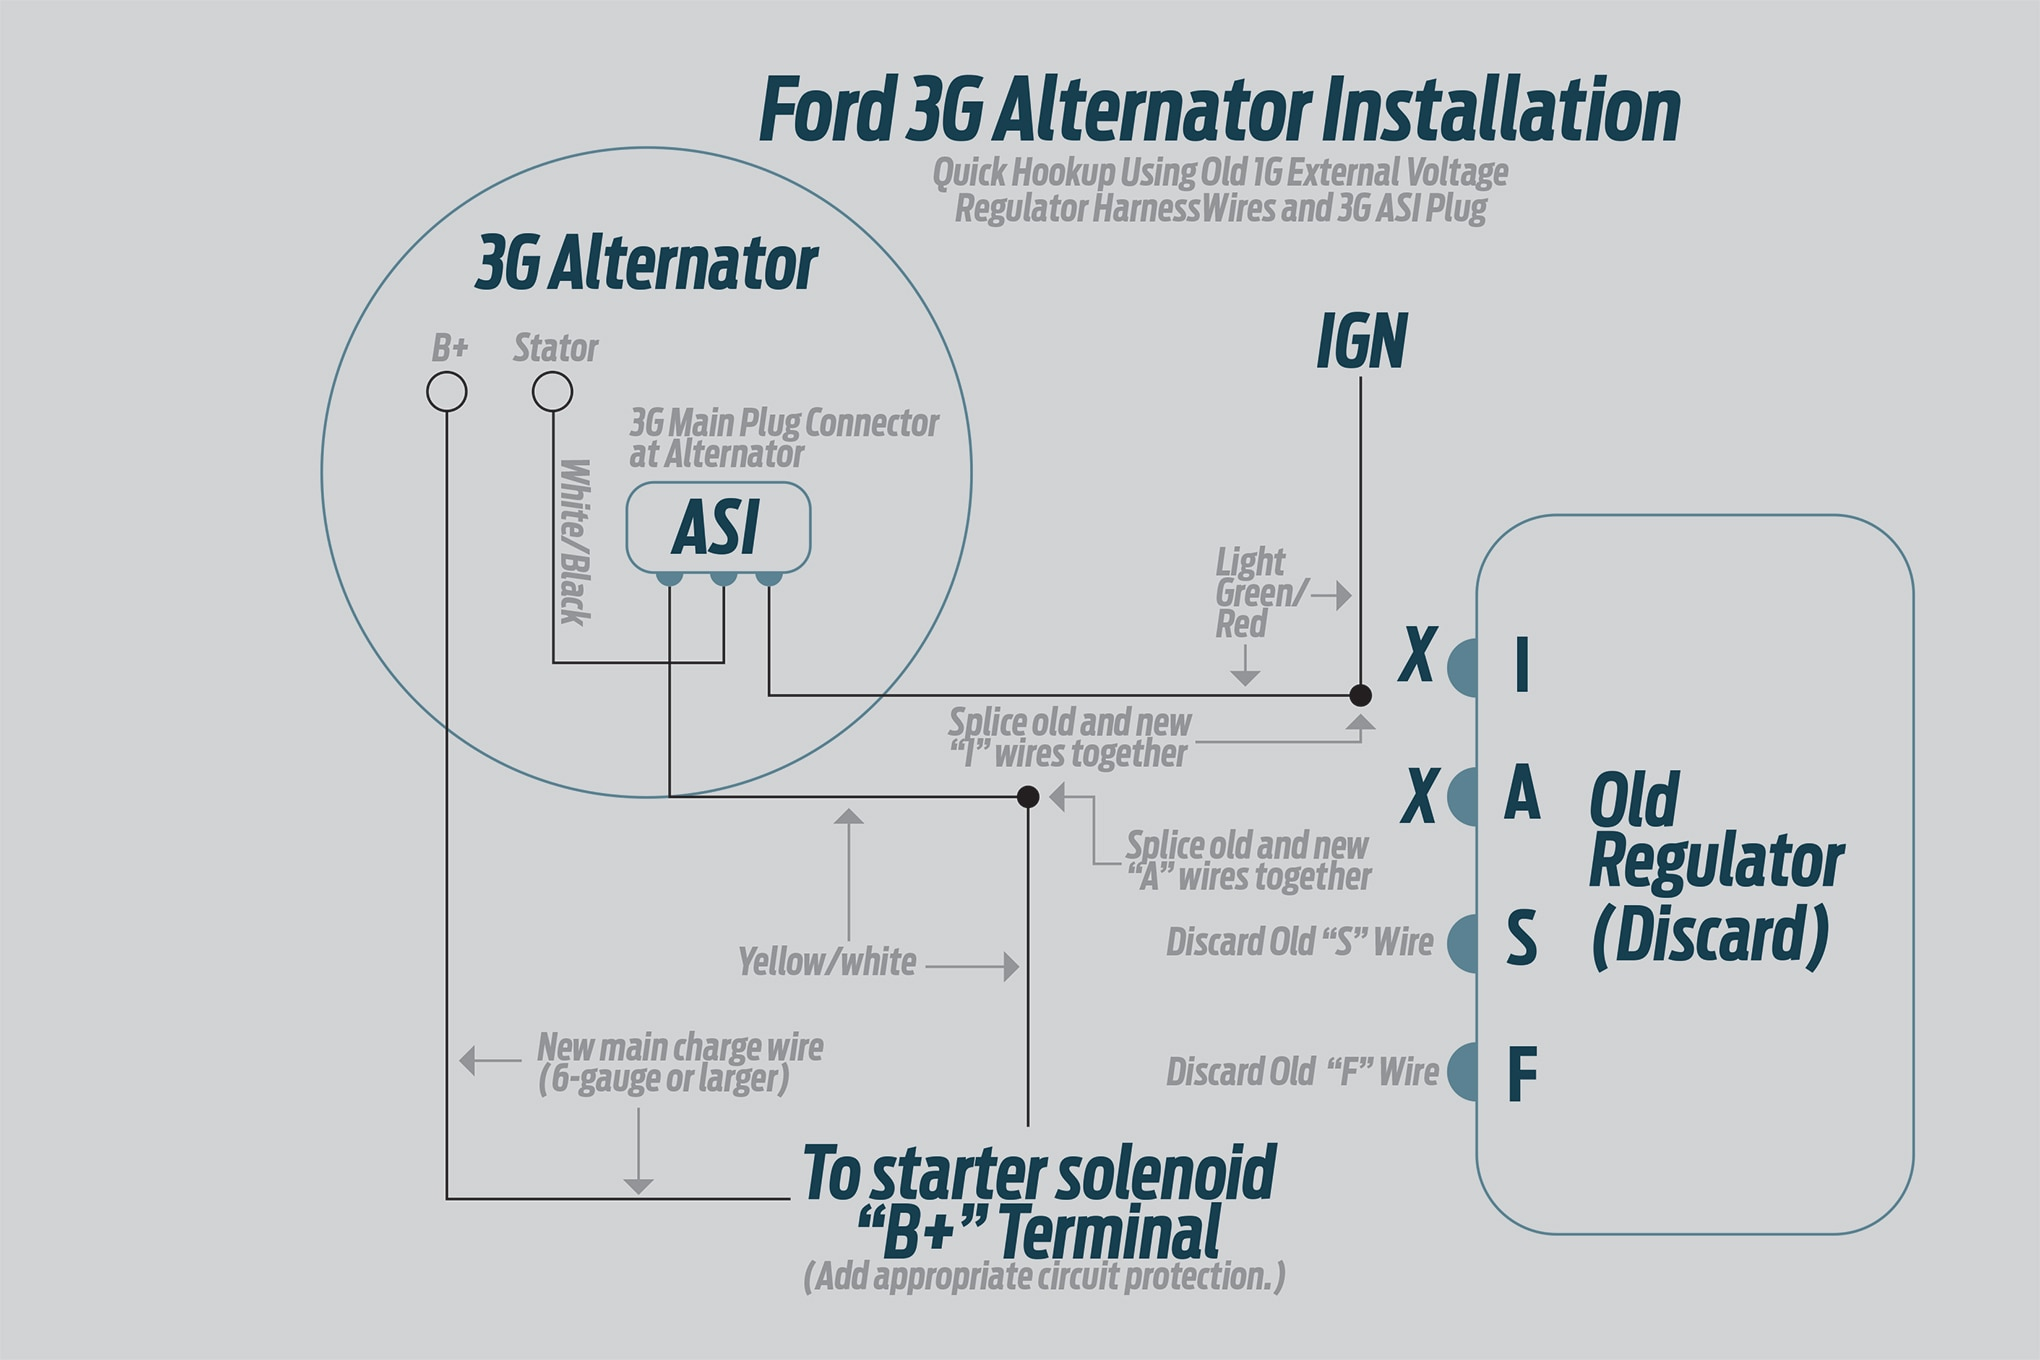 how to install a high output ford 3g alternator into older fordsford 1g alternator wiring  [ 2040 x 1360 Pixel ]